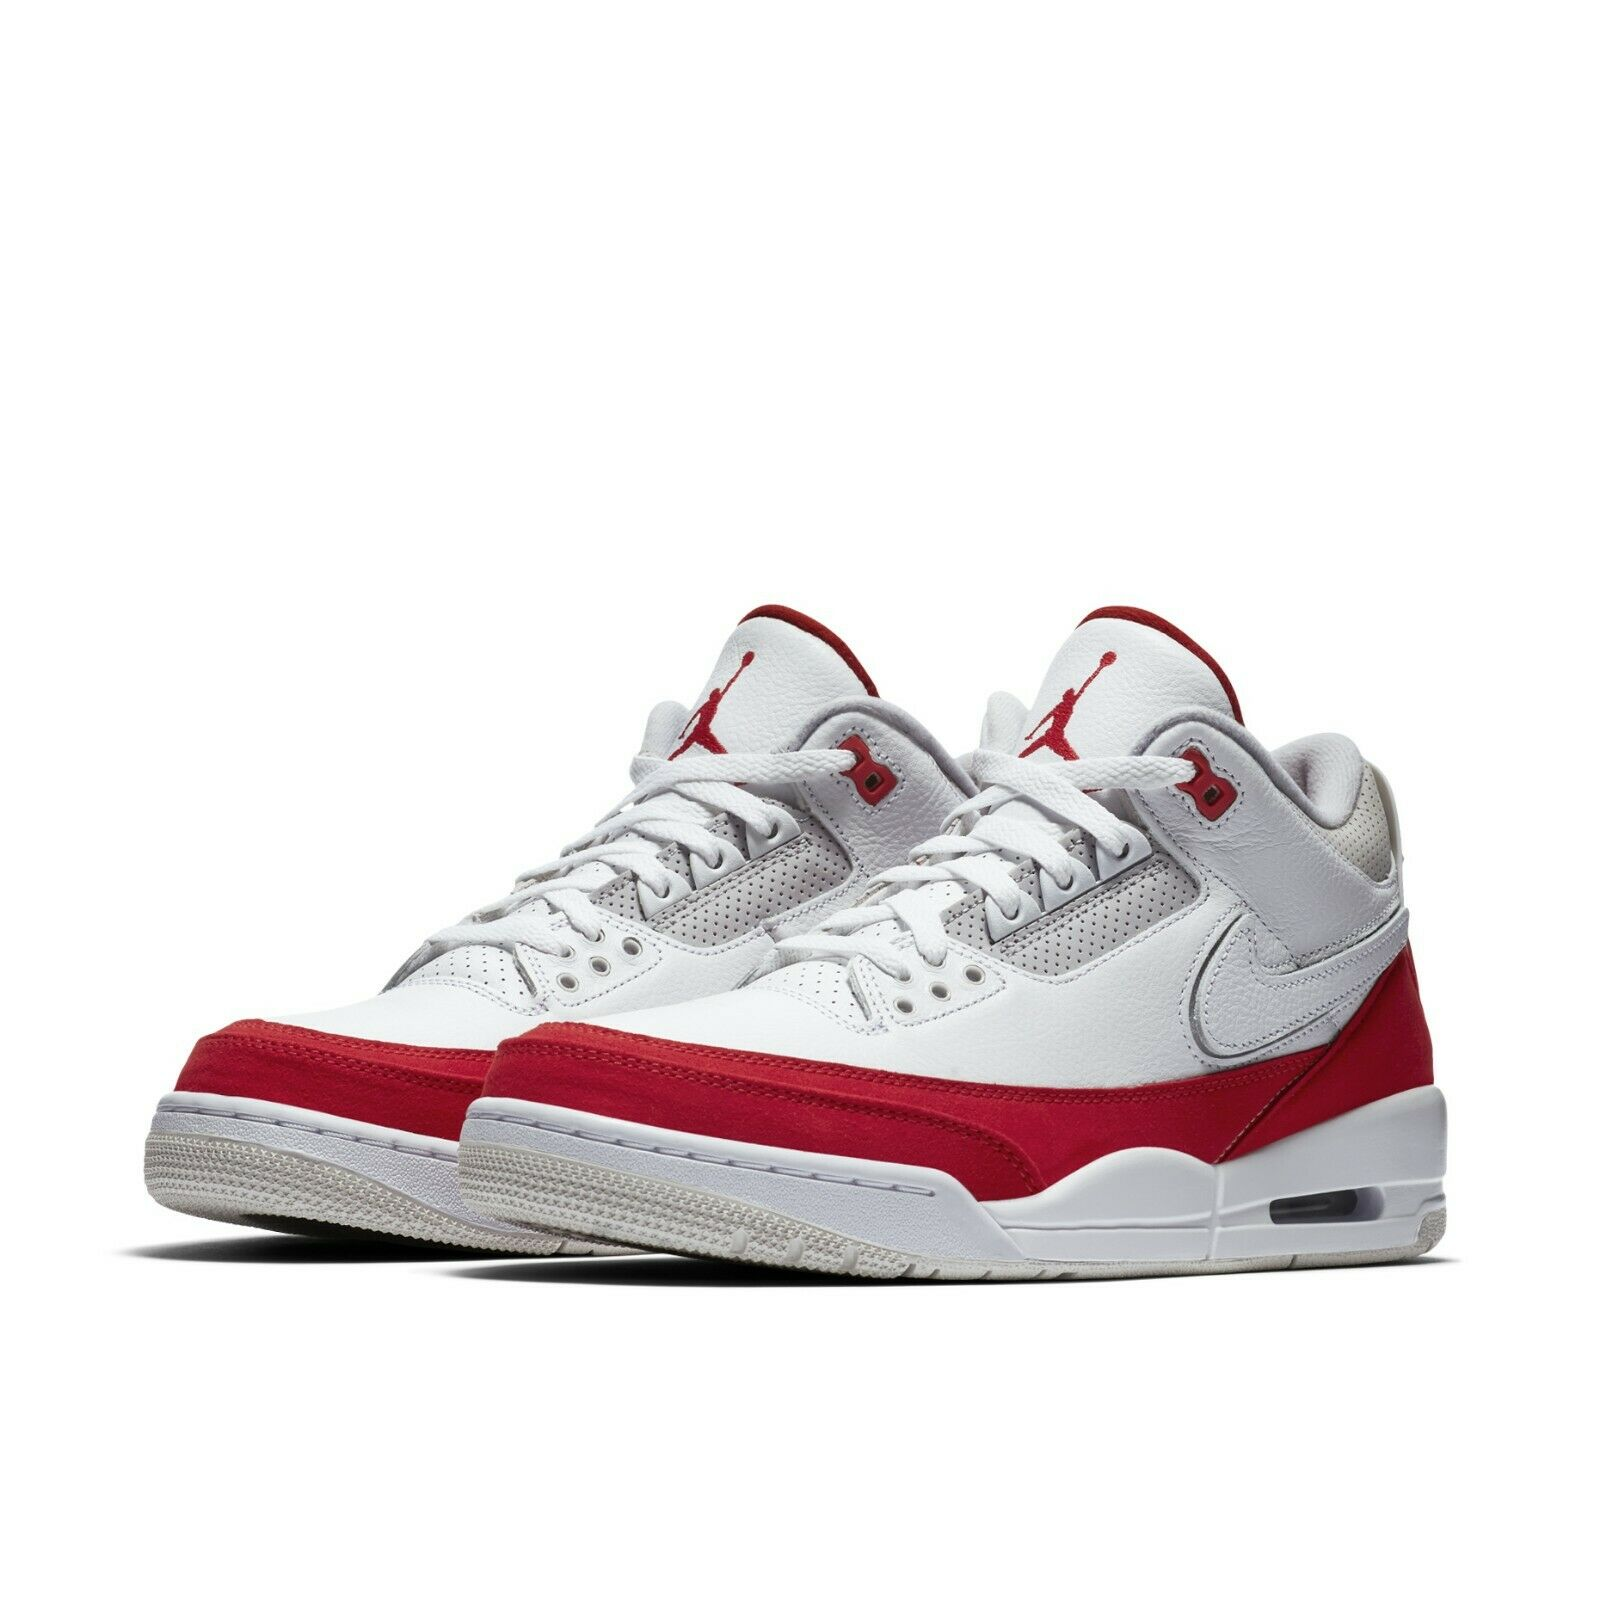 watch 5a89c 0e4bc Details about Nike Air Jordan 3 Retro TH SP Tinker Hatfield Air Max 1 AJ3  White Red CJ0939-100